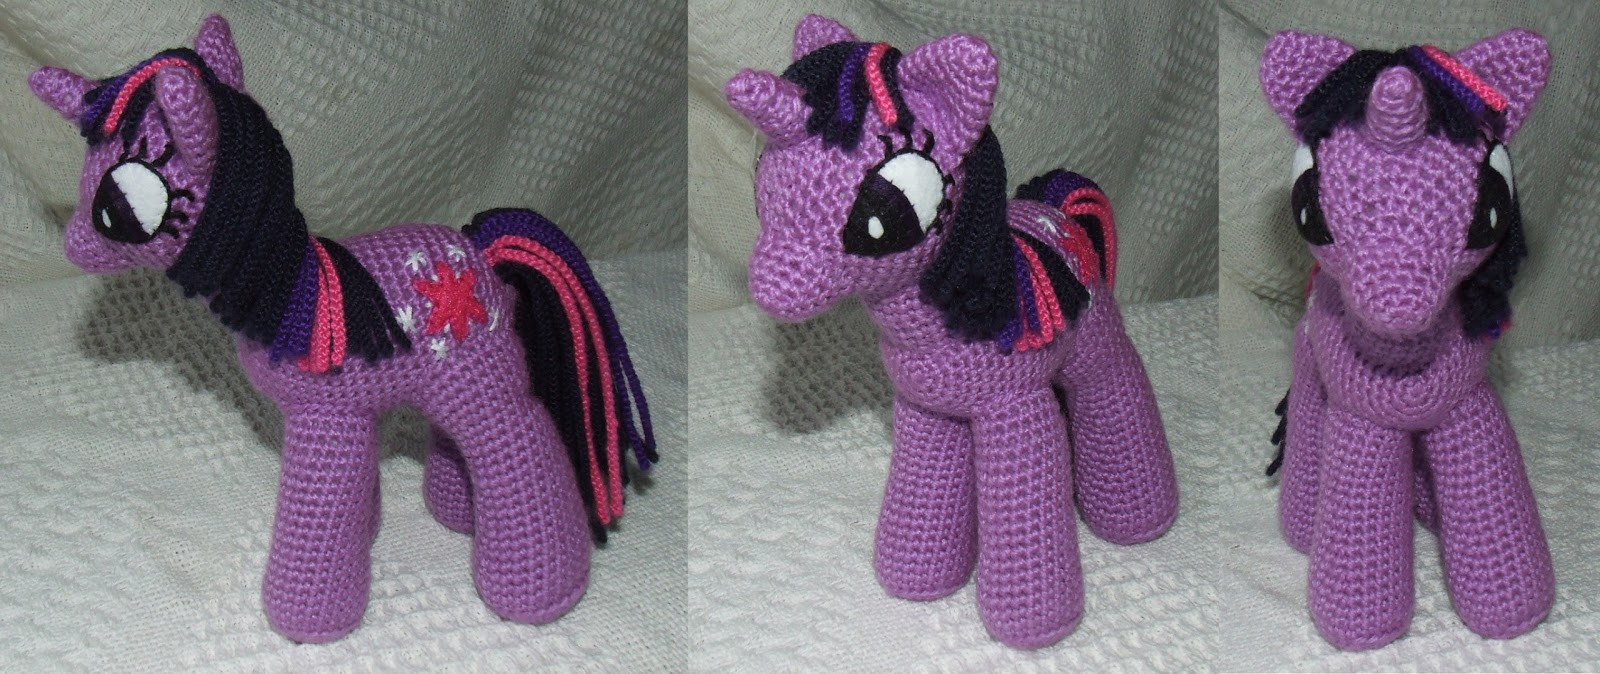 New Knit E Awe some My Little Pony Friendship is Magic My Little Pony Crochet Pattern Of Brilliant 49 Ideas My Little Pony Crochet Pattern